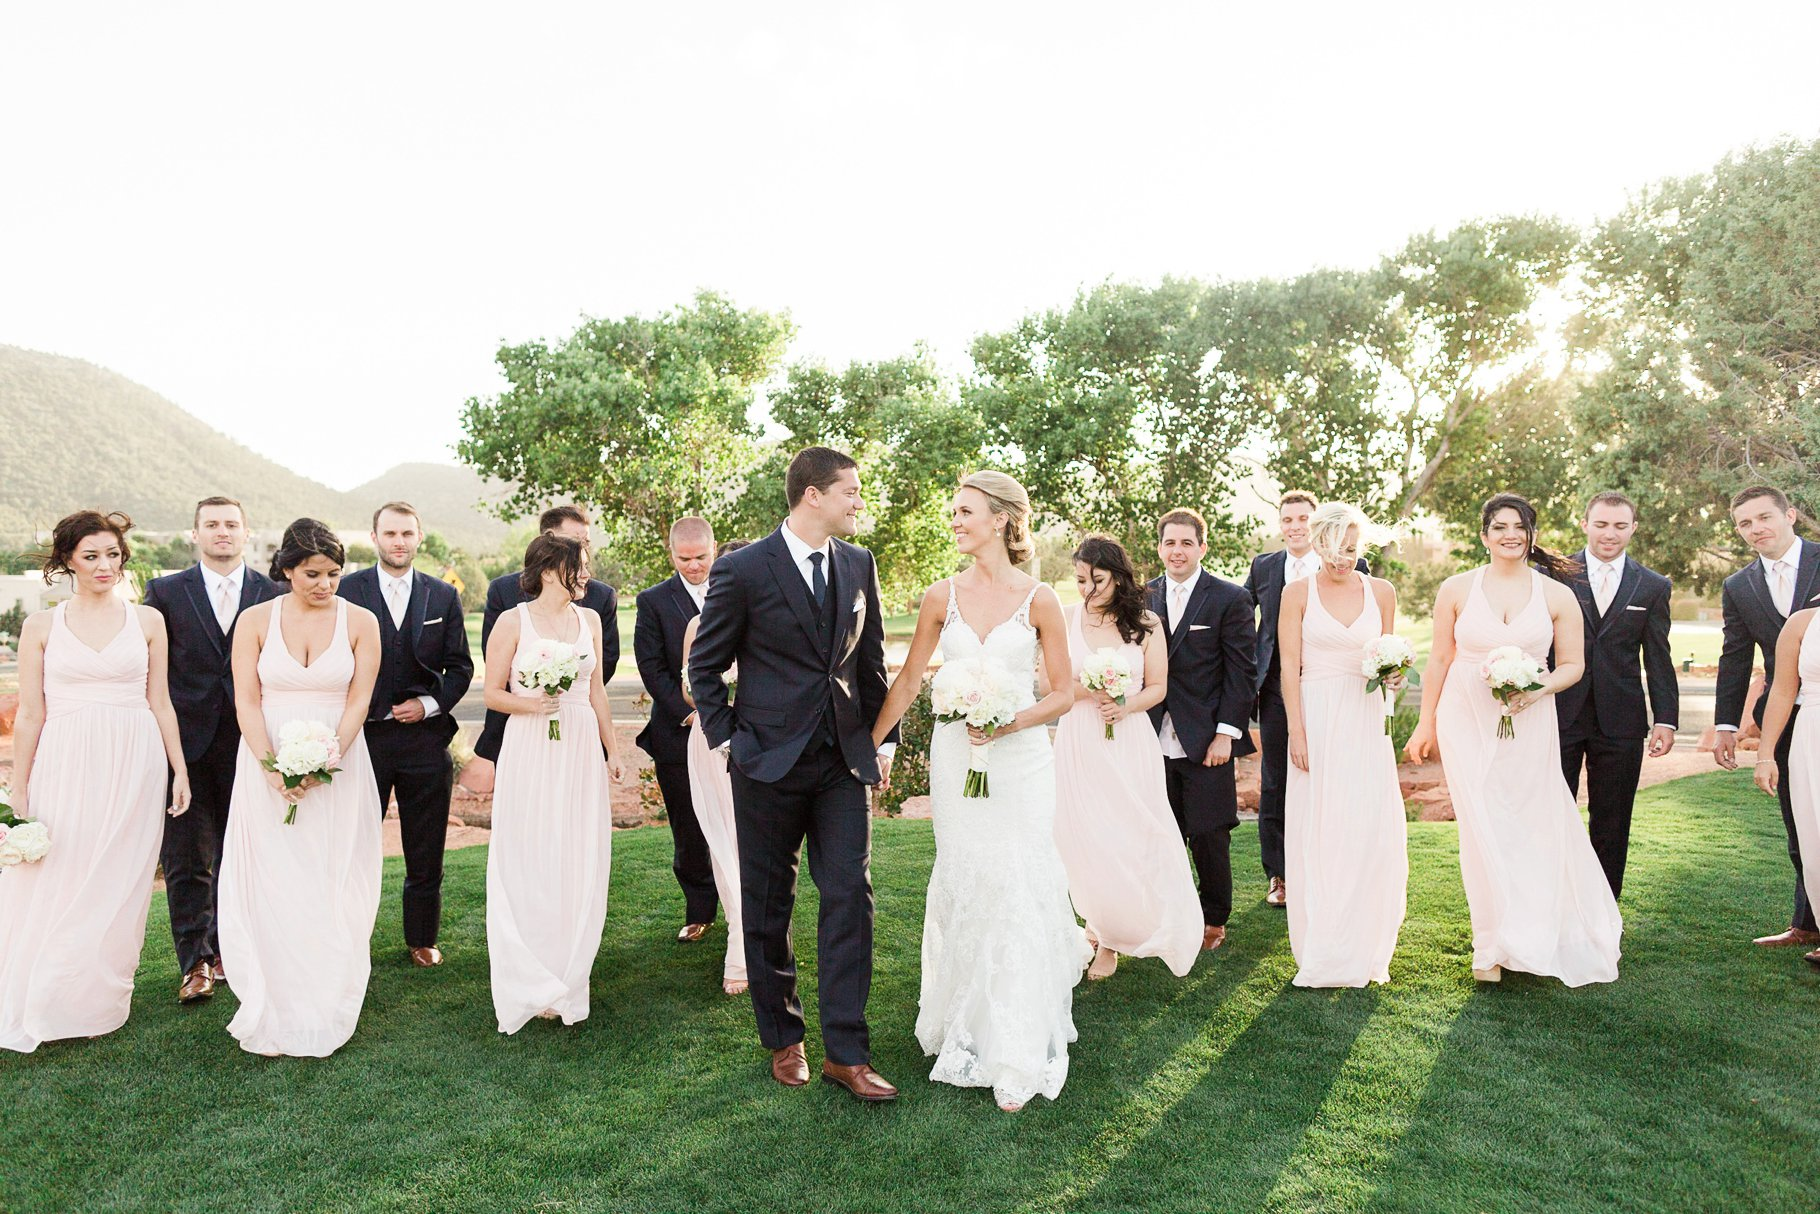 sedona wedding-100_GRETCHEN WAKEMAN PHOTOGRAPHY.jpg